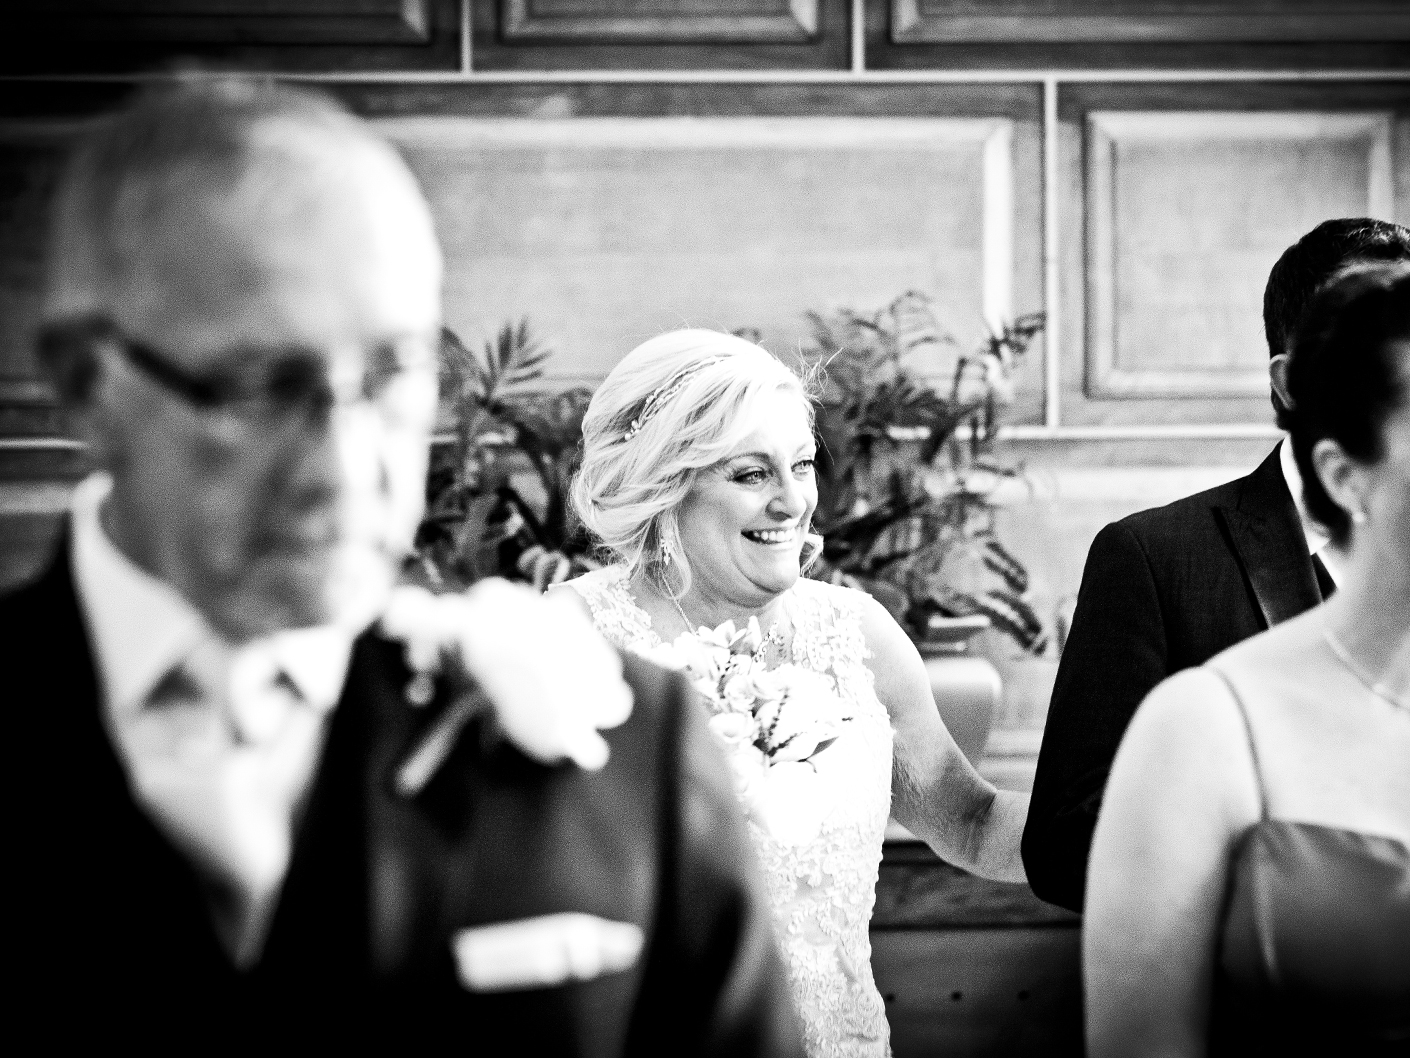 wedding-photography-of-the-arrival-of-the-bride-at-the-ceremony-in-cheshire